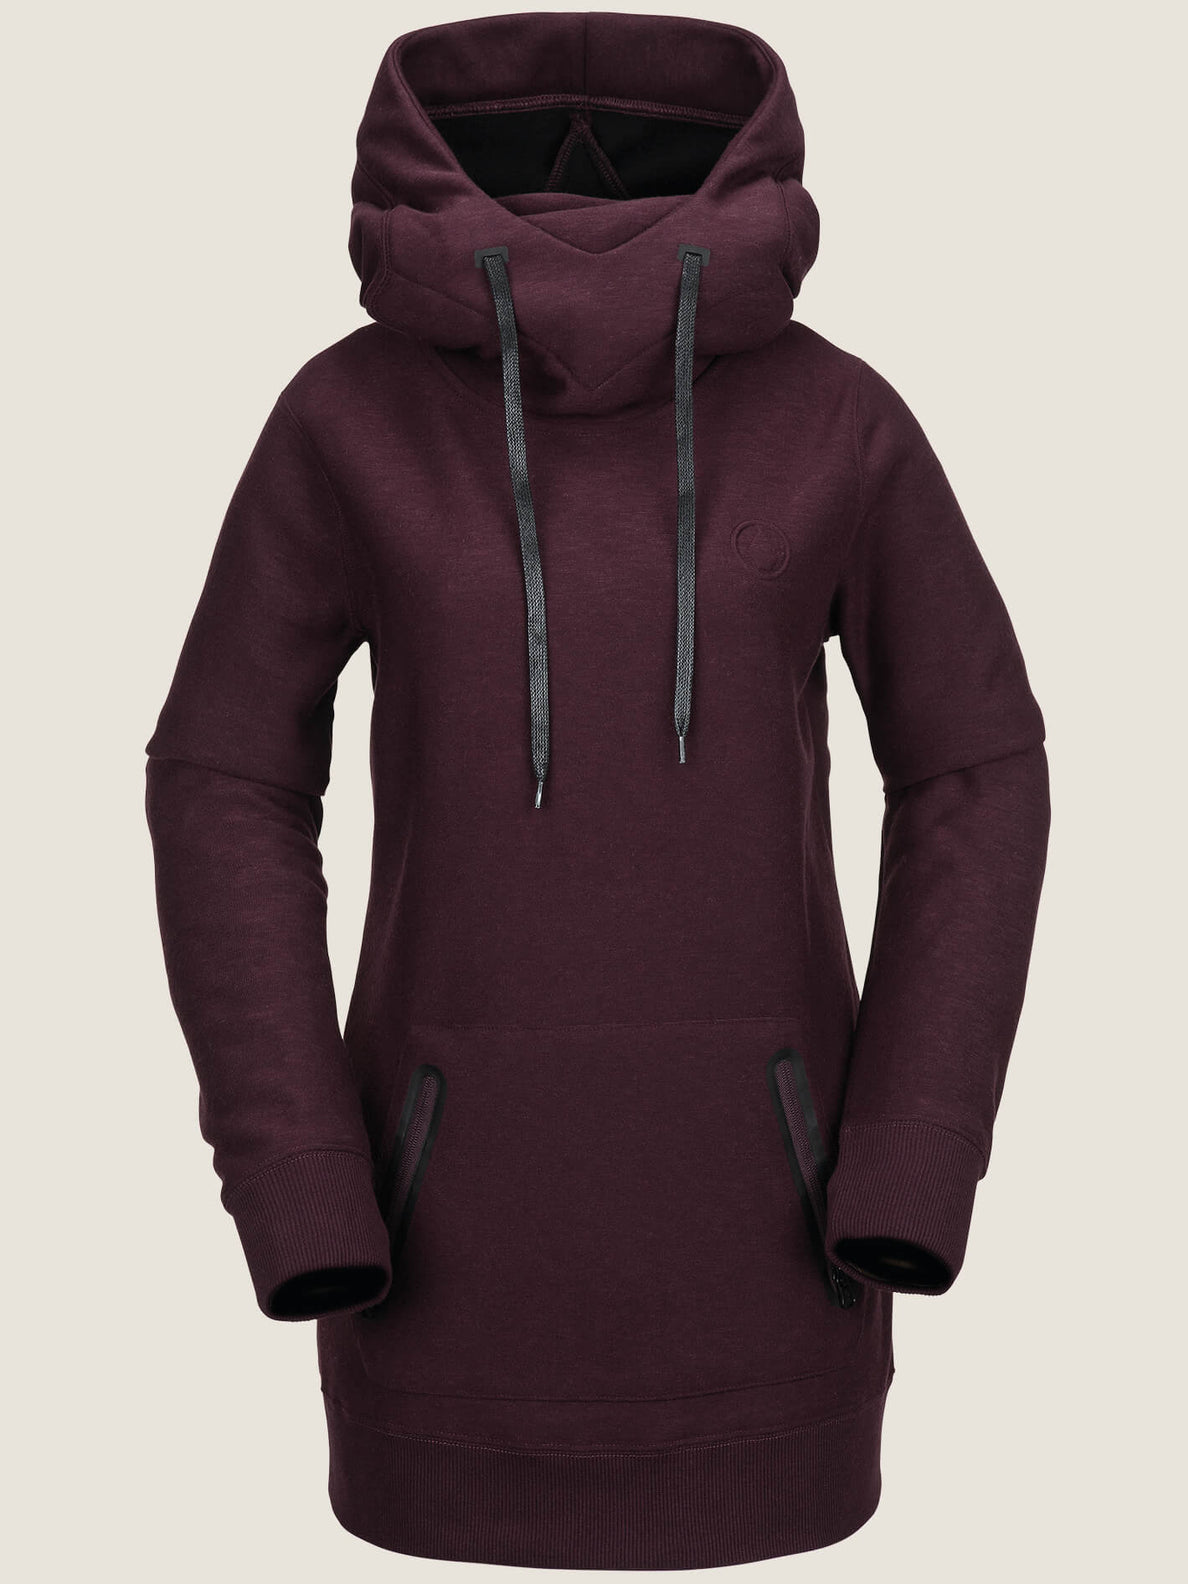 Riding Hoodie In Merlot, Front View